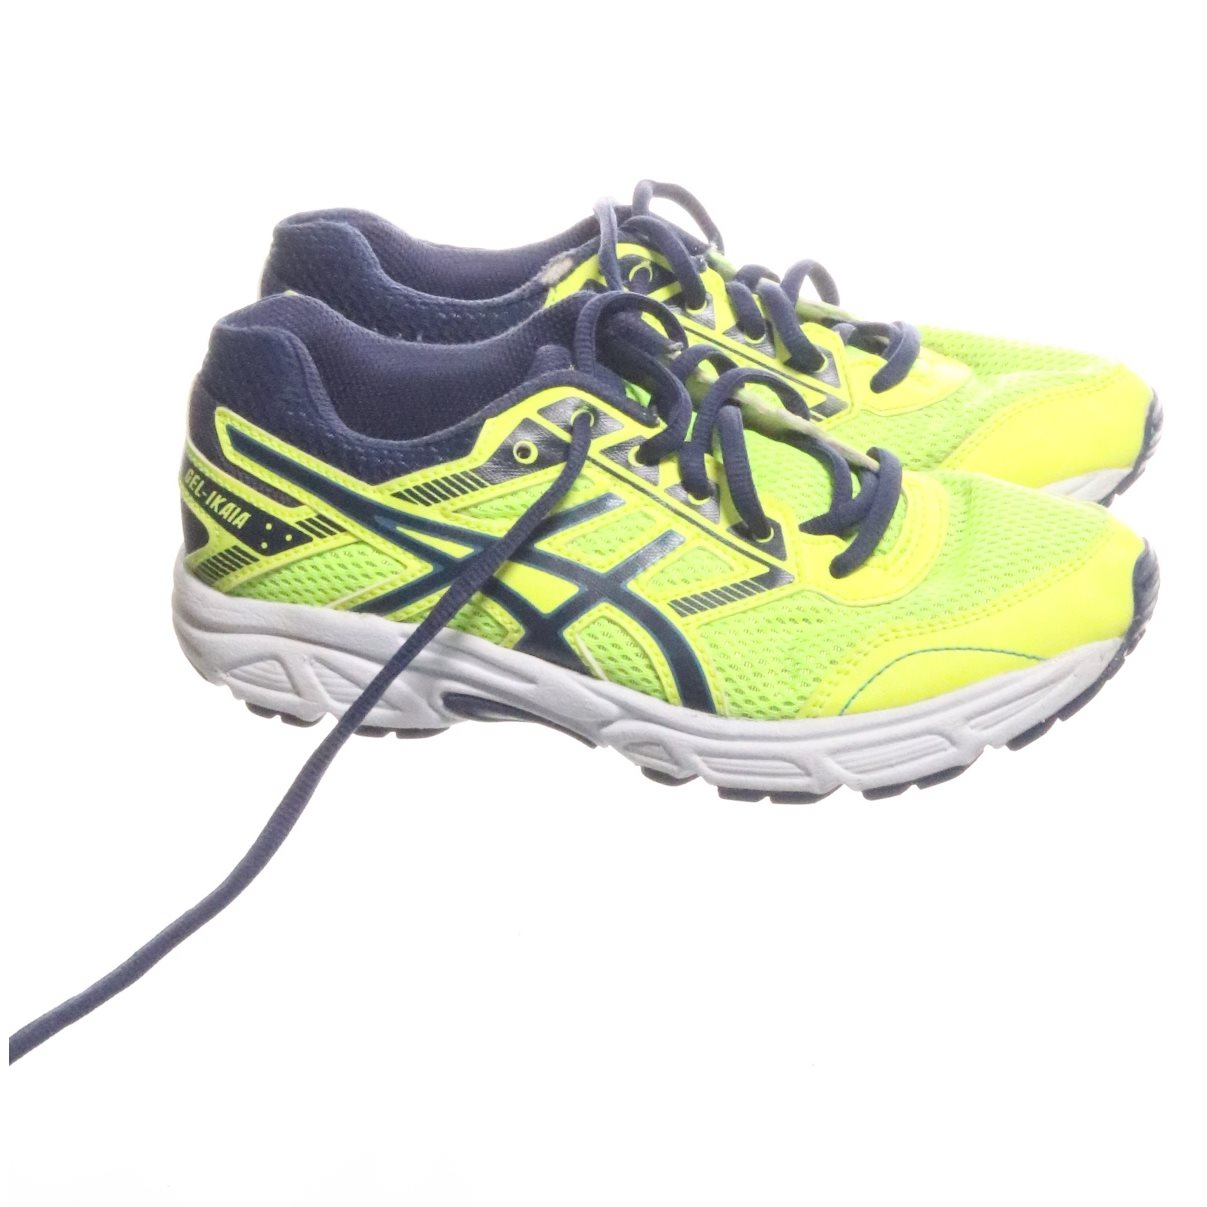 sports shoes e4e24 a7700 Asics, Löparskor, Strl  35,5, Gul Blå